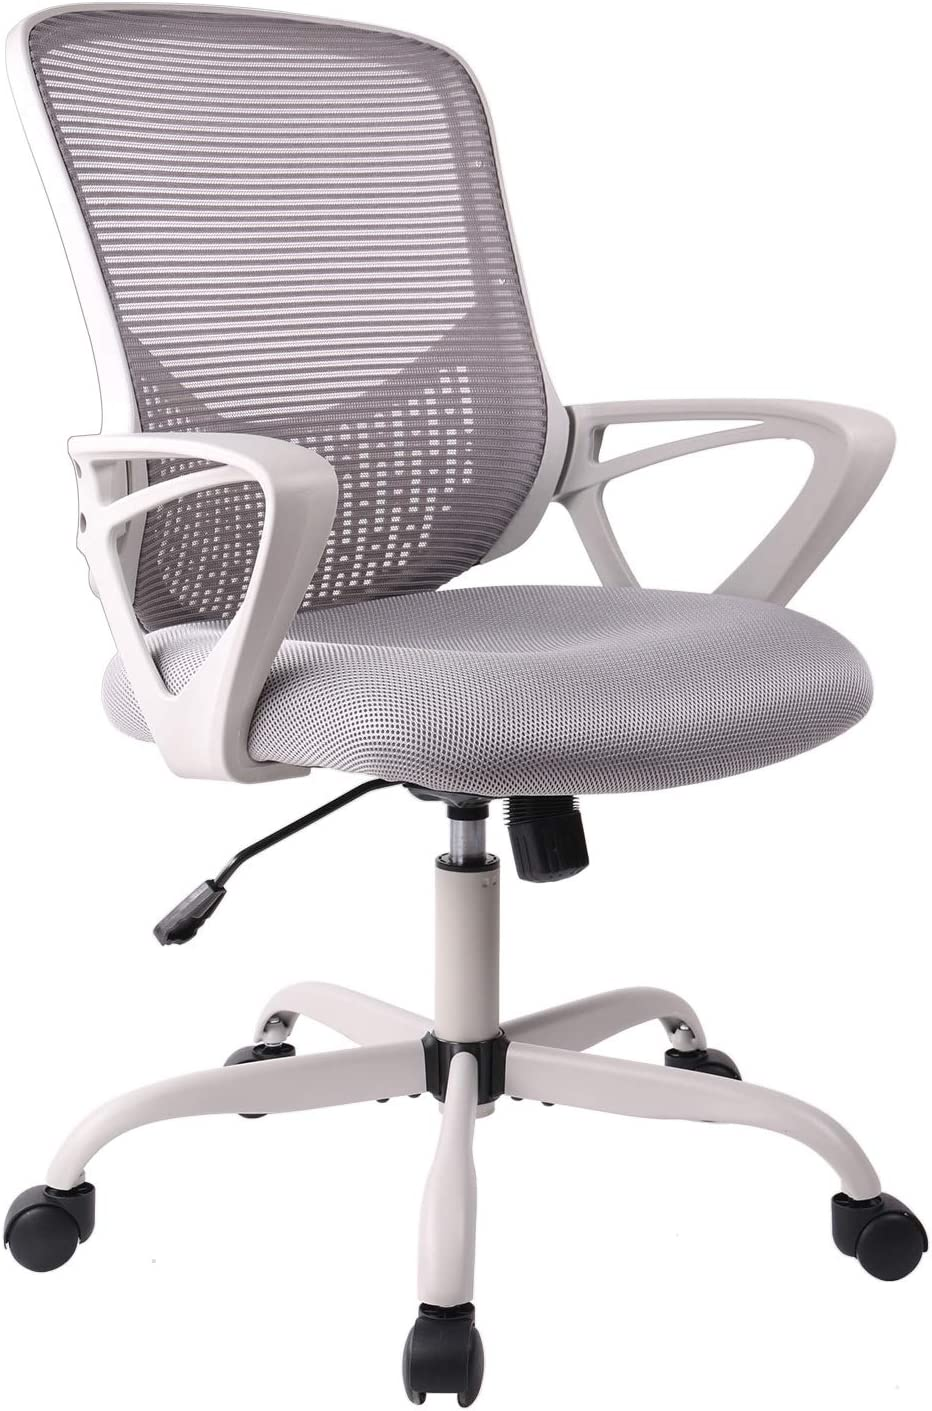 Office Chair, Ergonomic Desk Chair Computer Task Chair Mesh with Armrests Mid-Back for Home Office Conference Study Room, Gray: Kitchen & Dining